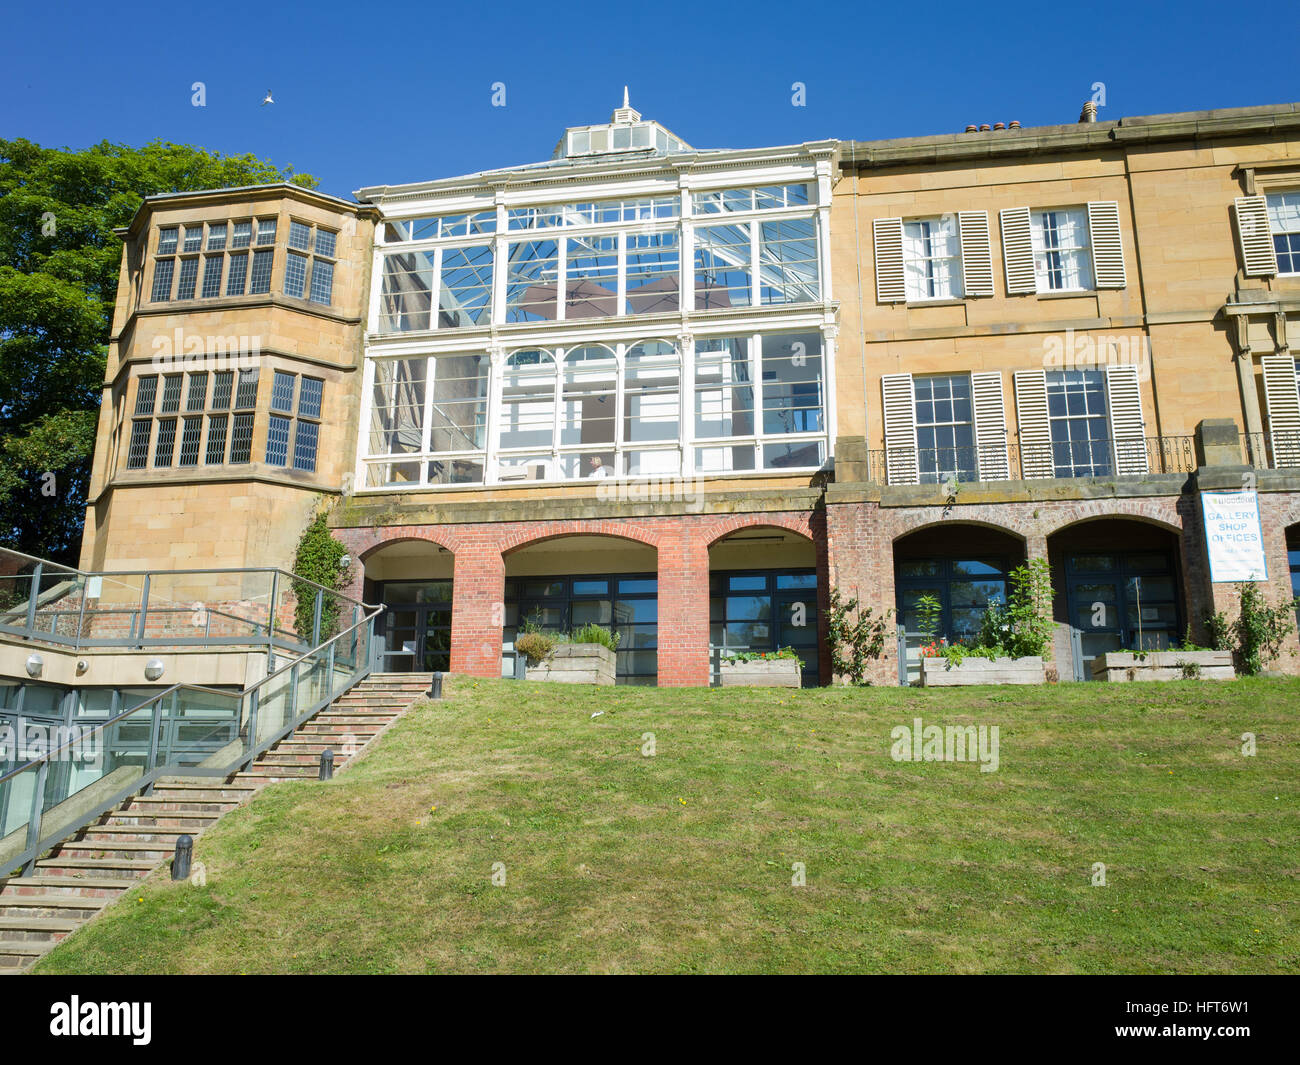 Woodend Creative Space Scarborough UK Grade II listed building - Stock Image